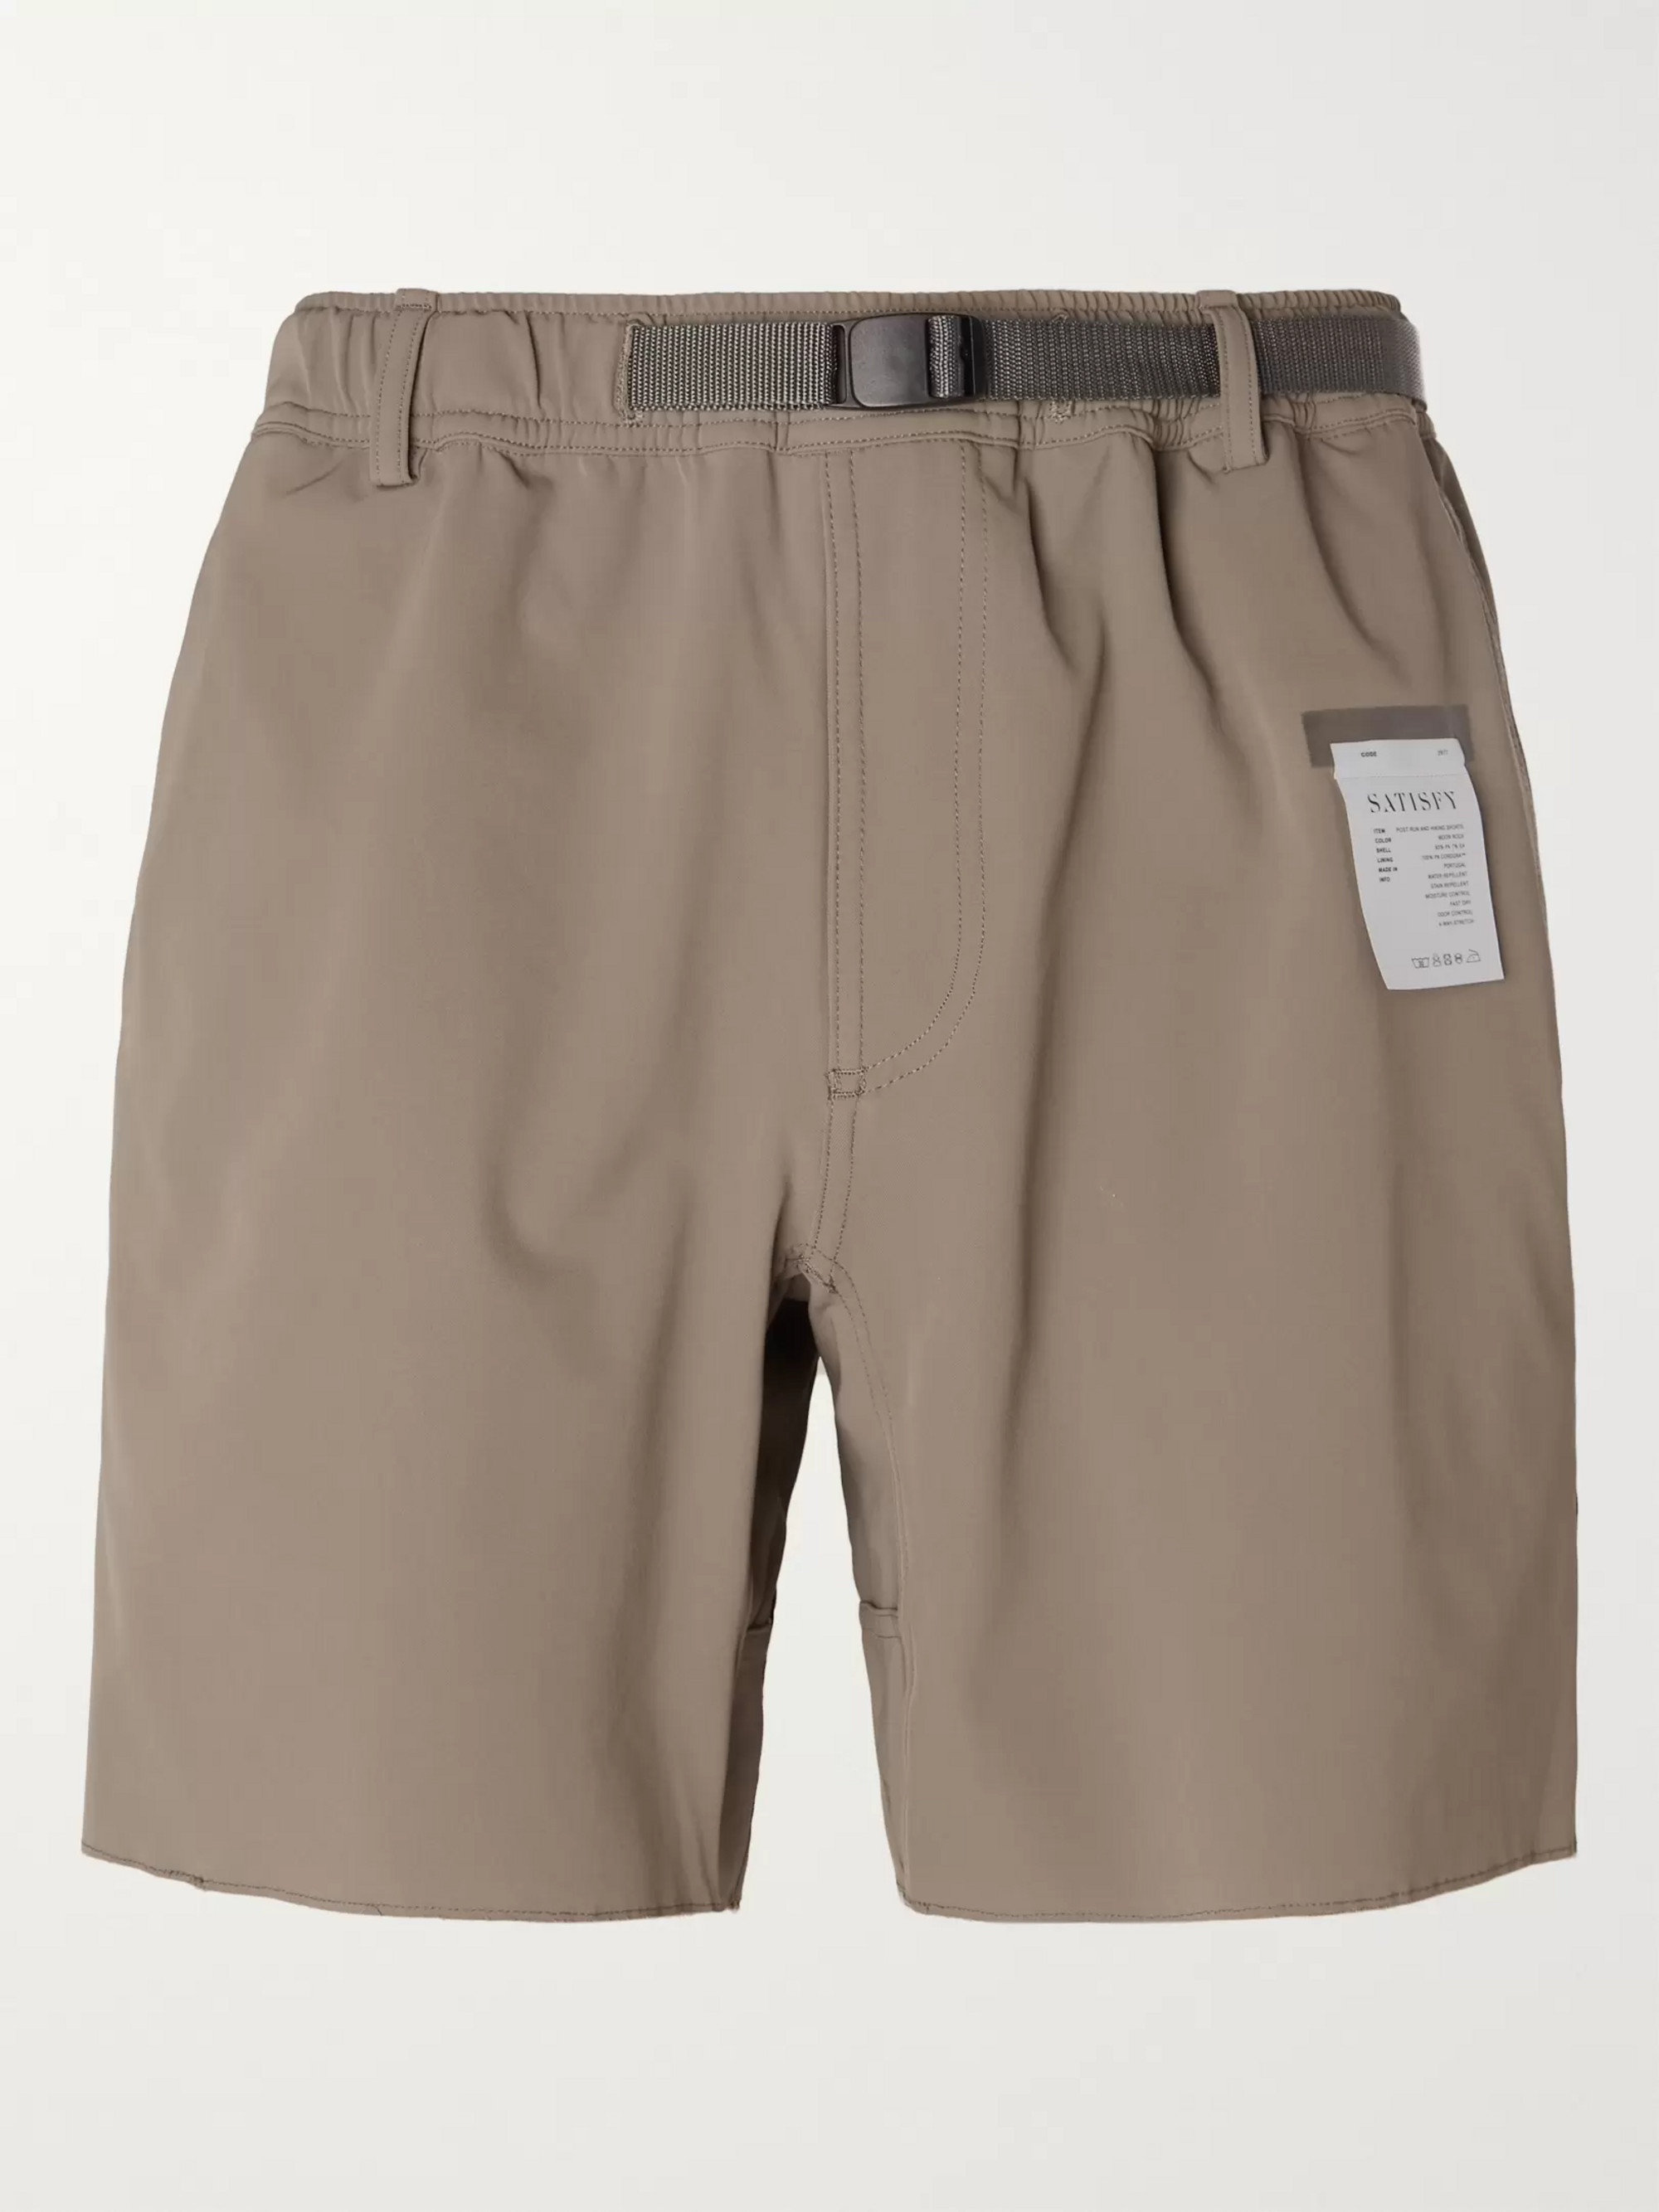 Satisfy 3XDRY Shorts